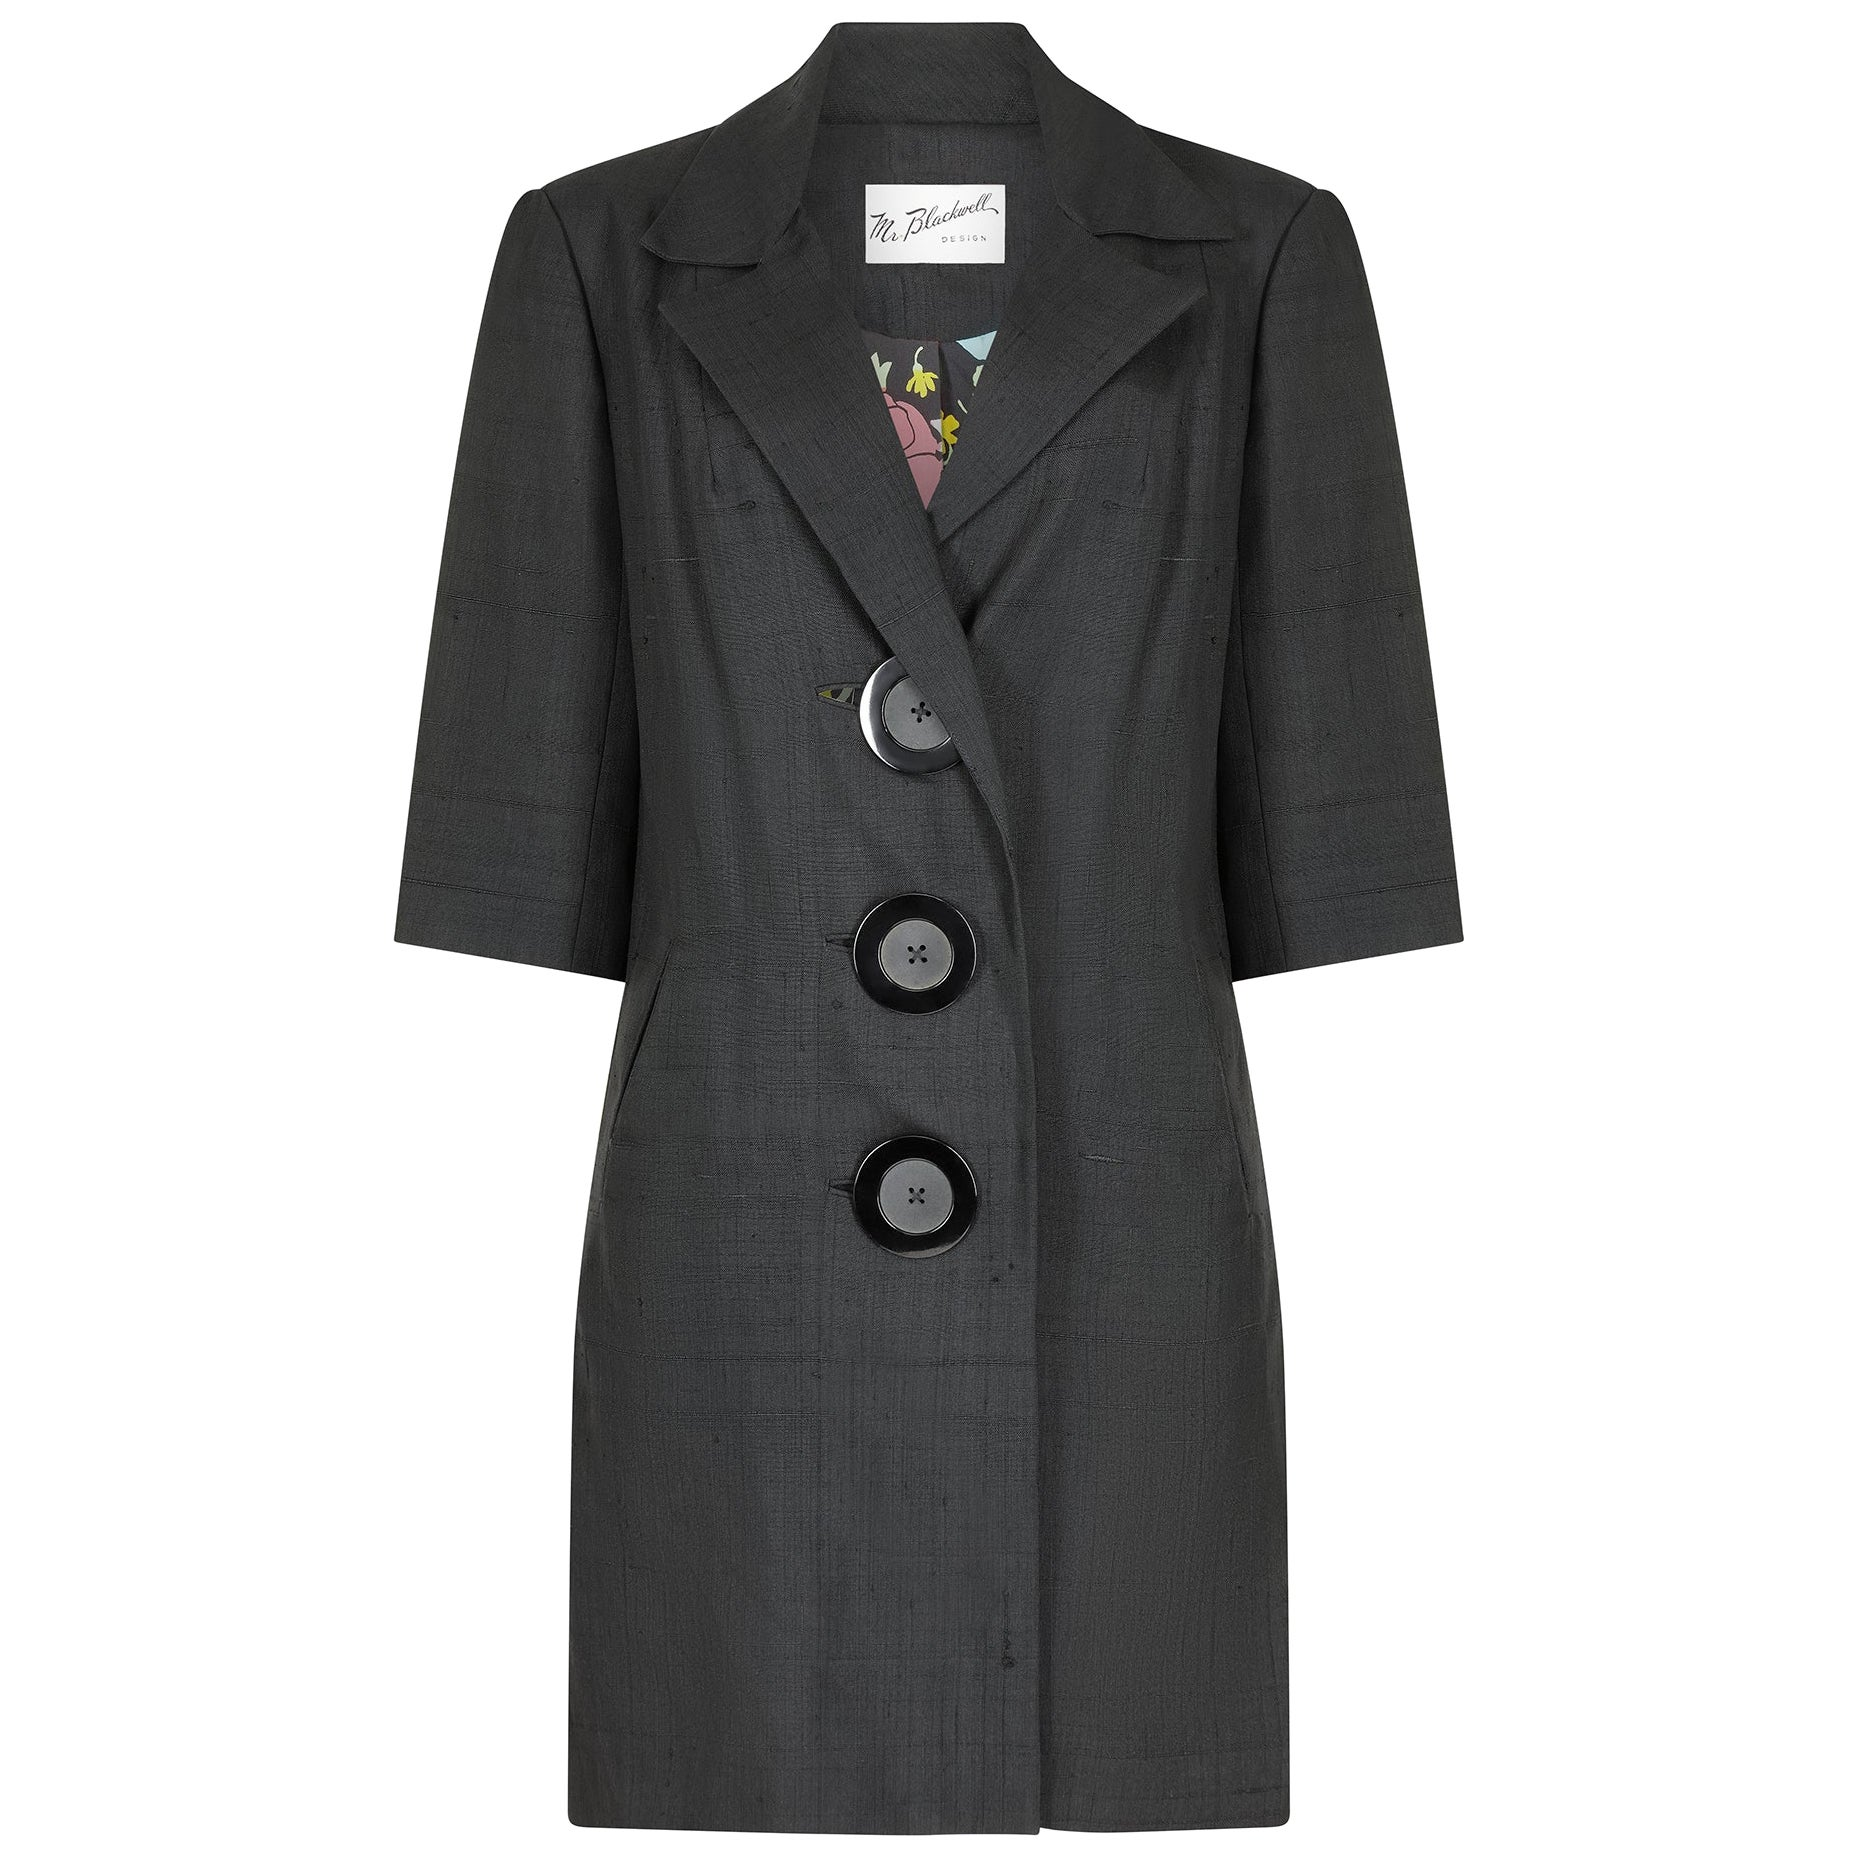 1960s Mr Blackwell Coatdress with Statement Buttons